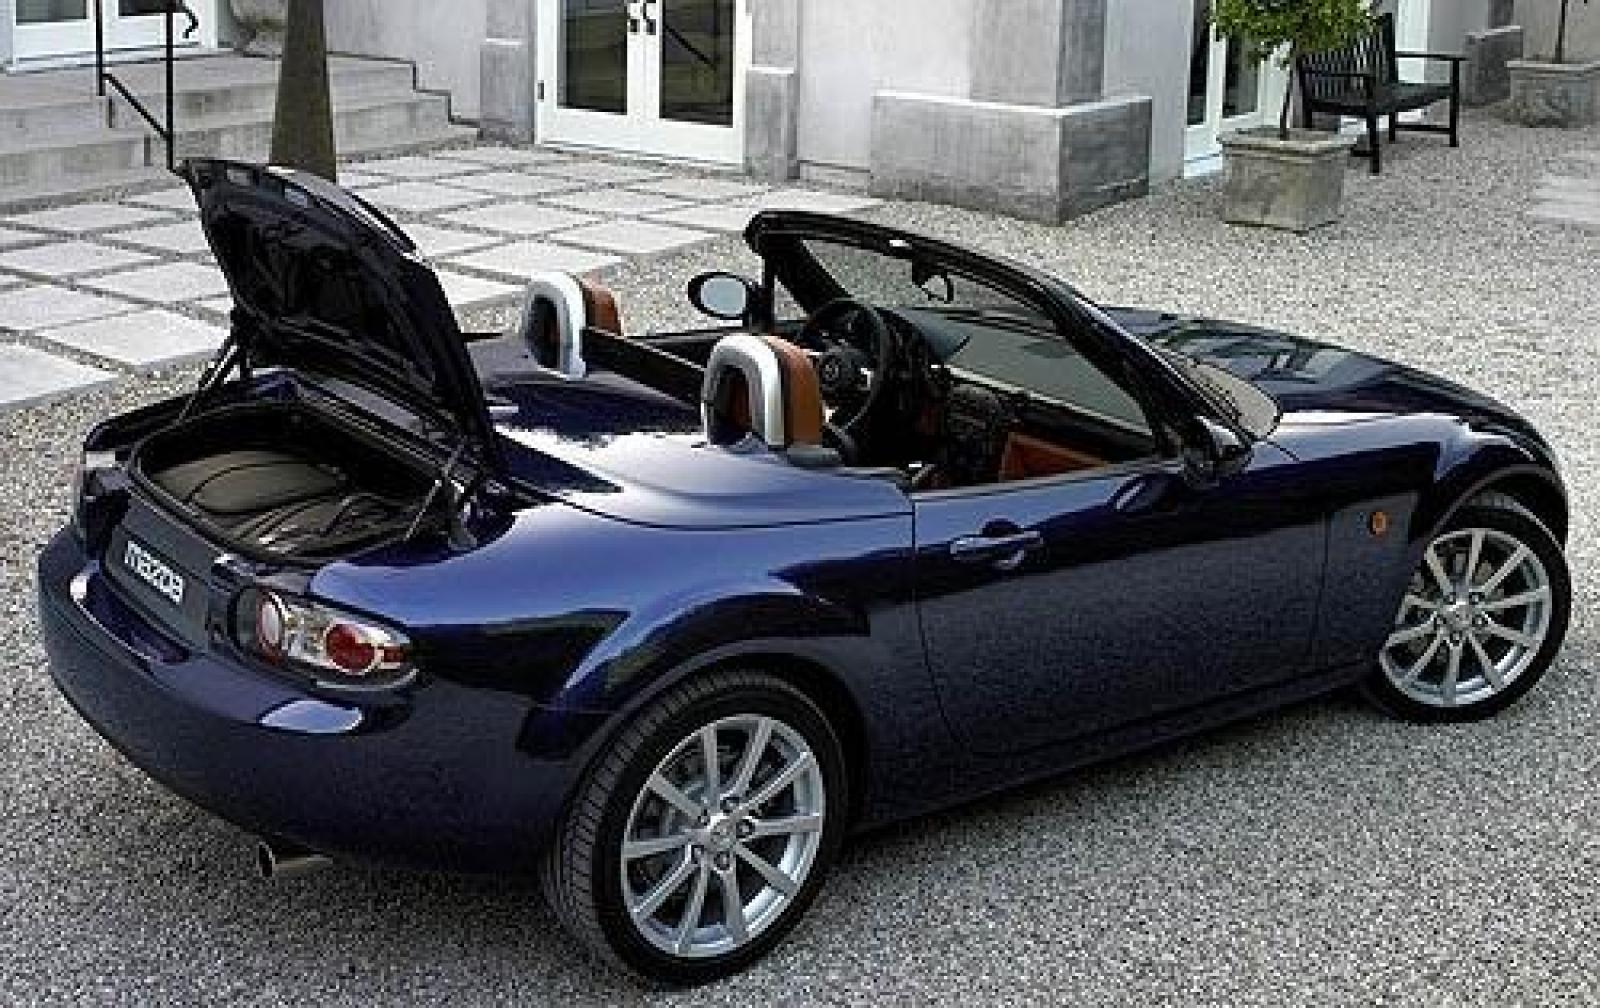 2008 mazda mx 5 miata information and photos zombiedrive. Black Bedroom Furniture Sets. Home Design Ideas